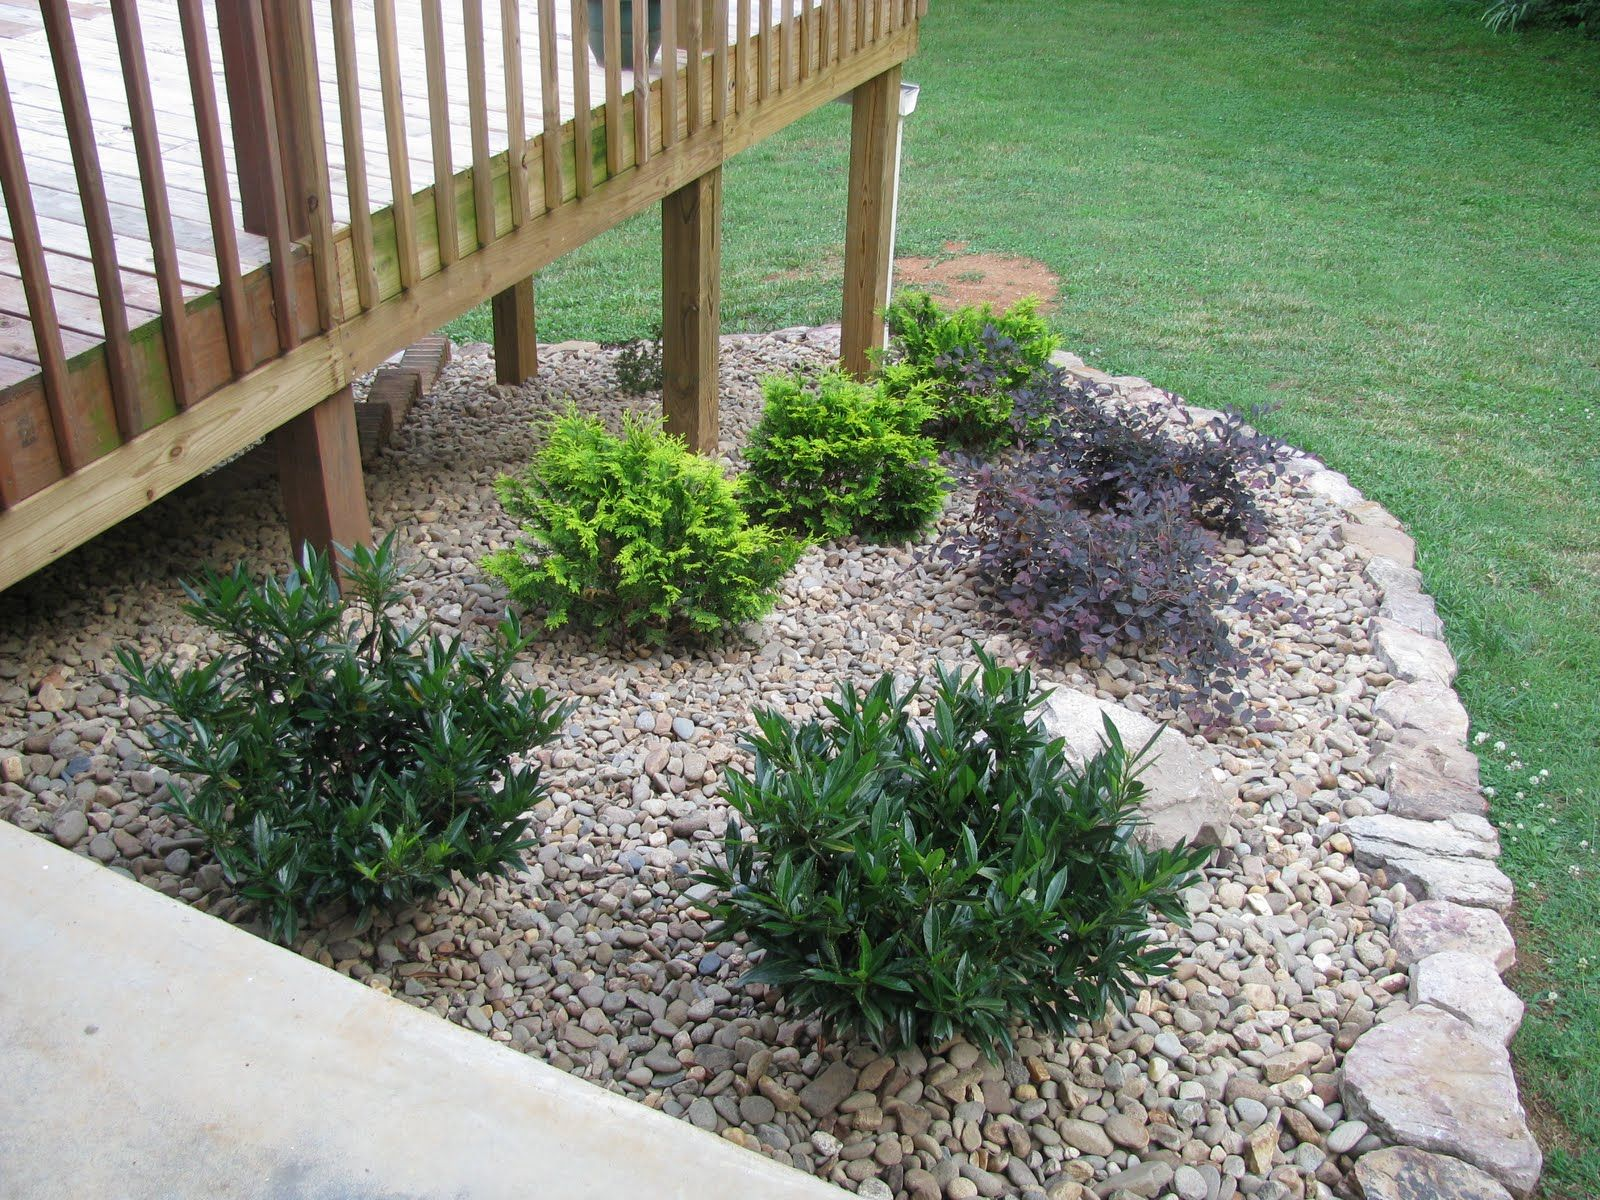 Landscaping around a deck lightsonthelake rock garden for Images of garden decking